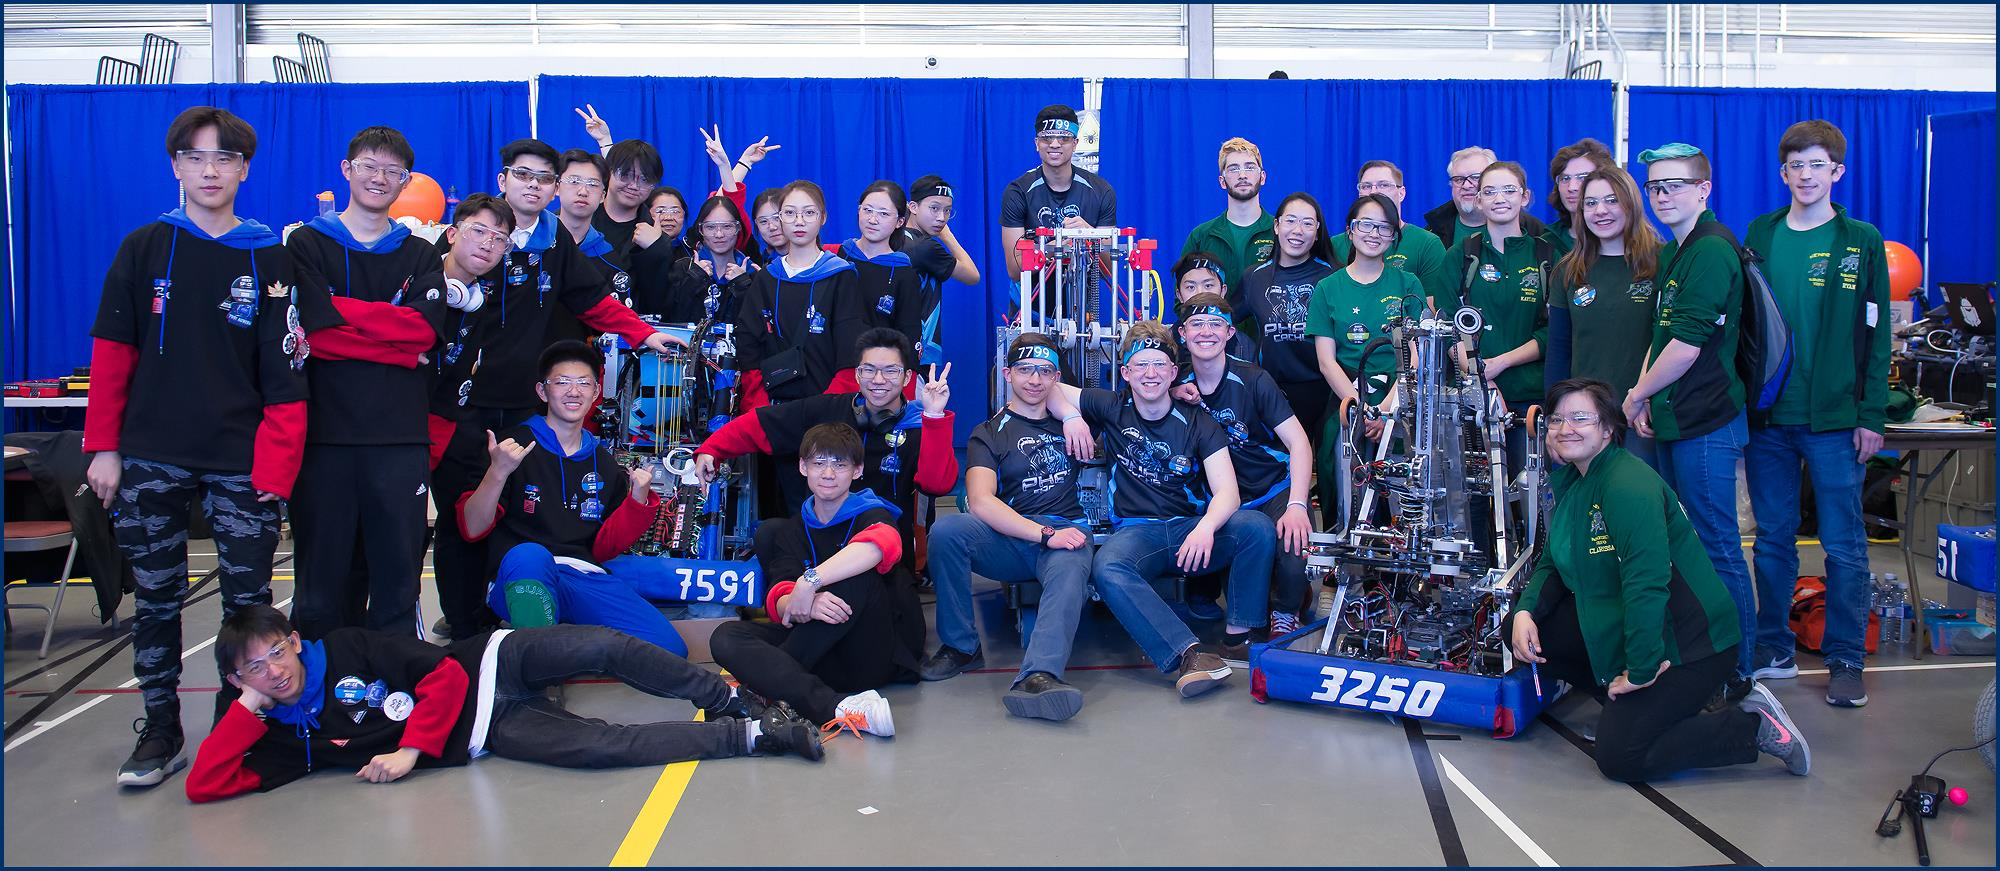 Our competition alliance: Aurora 7591 from Beijing and Kennedy Robotics 3250 from Sacramento.